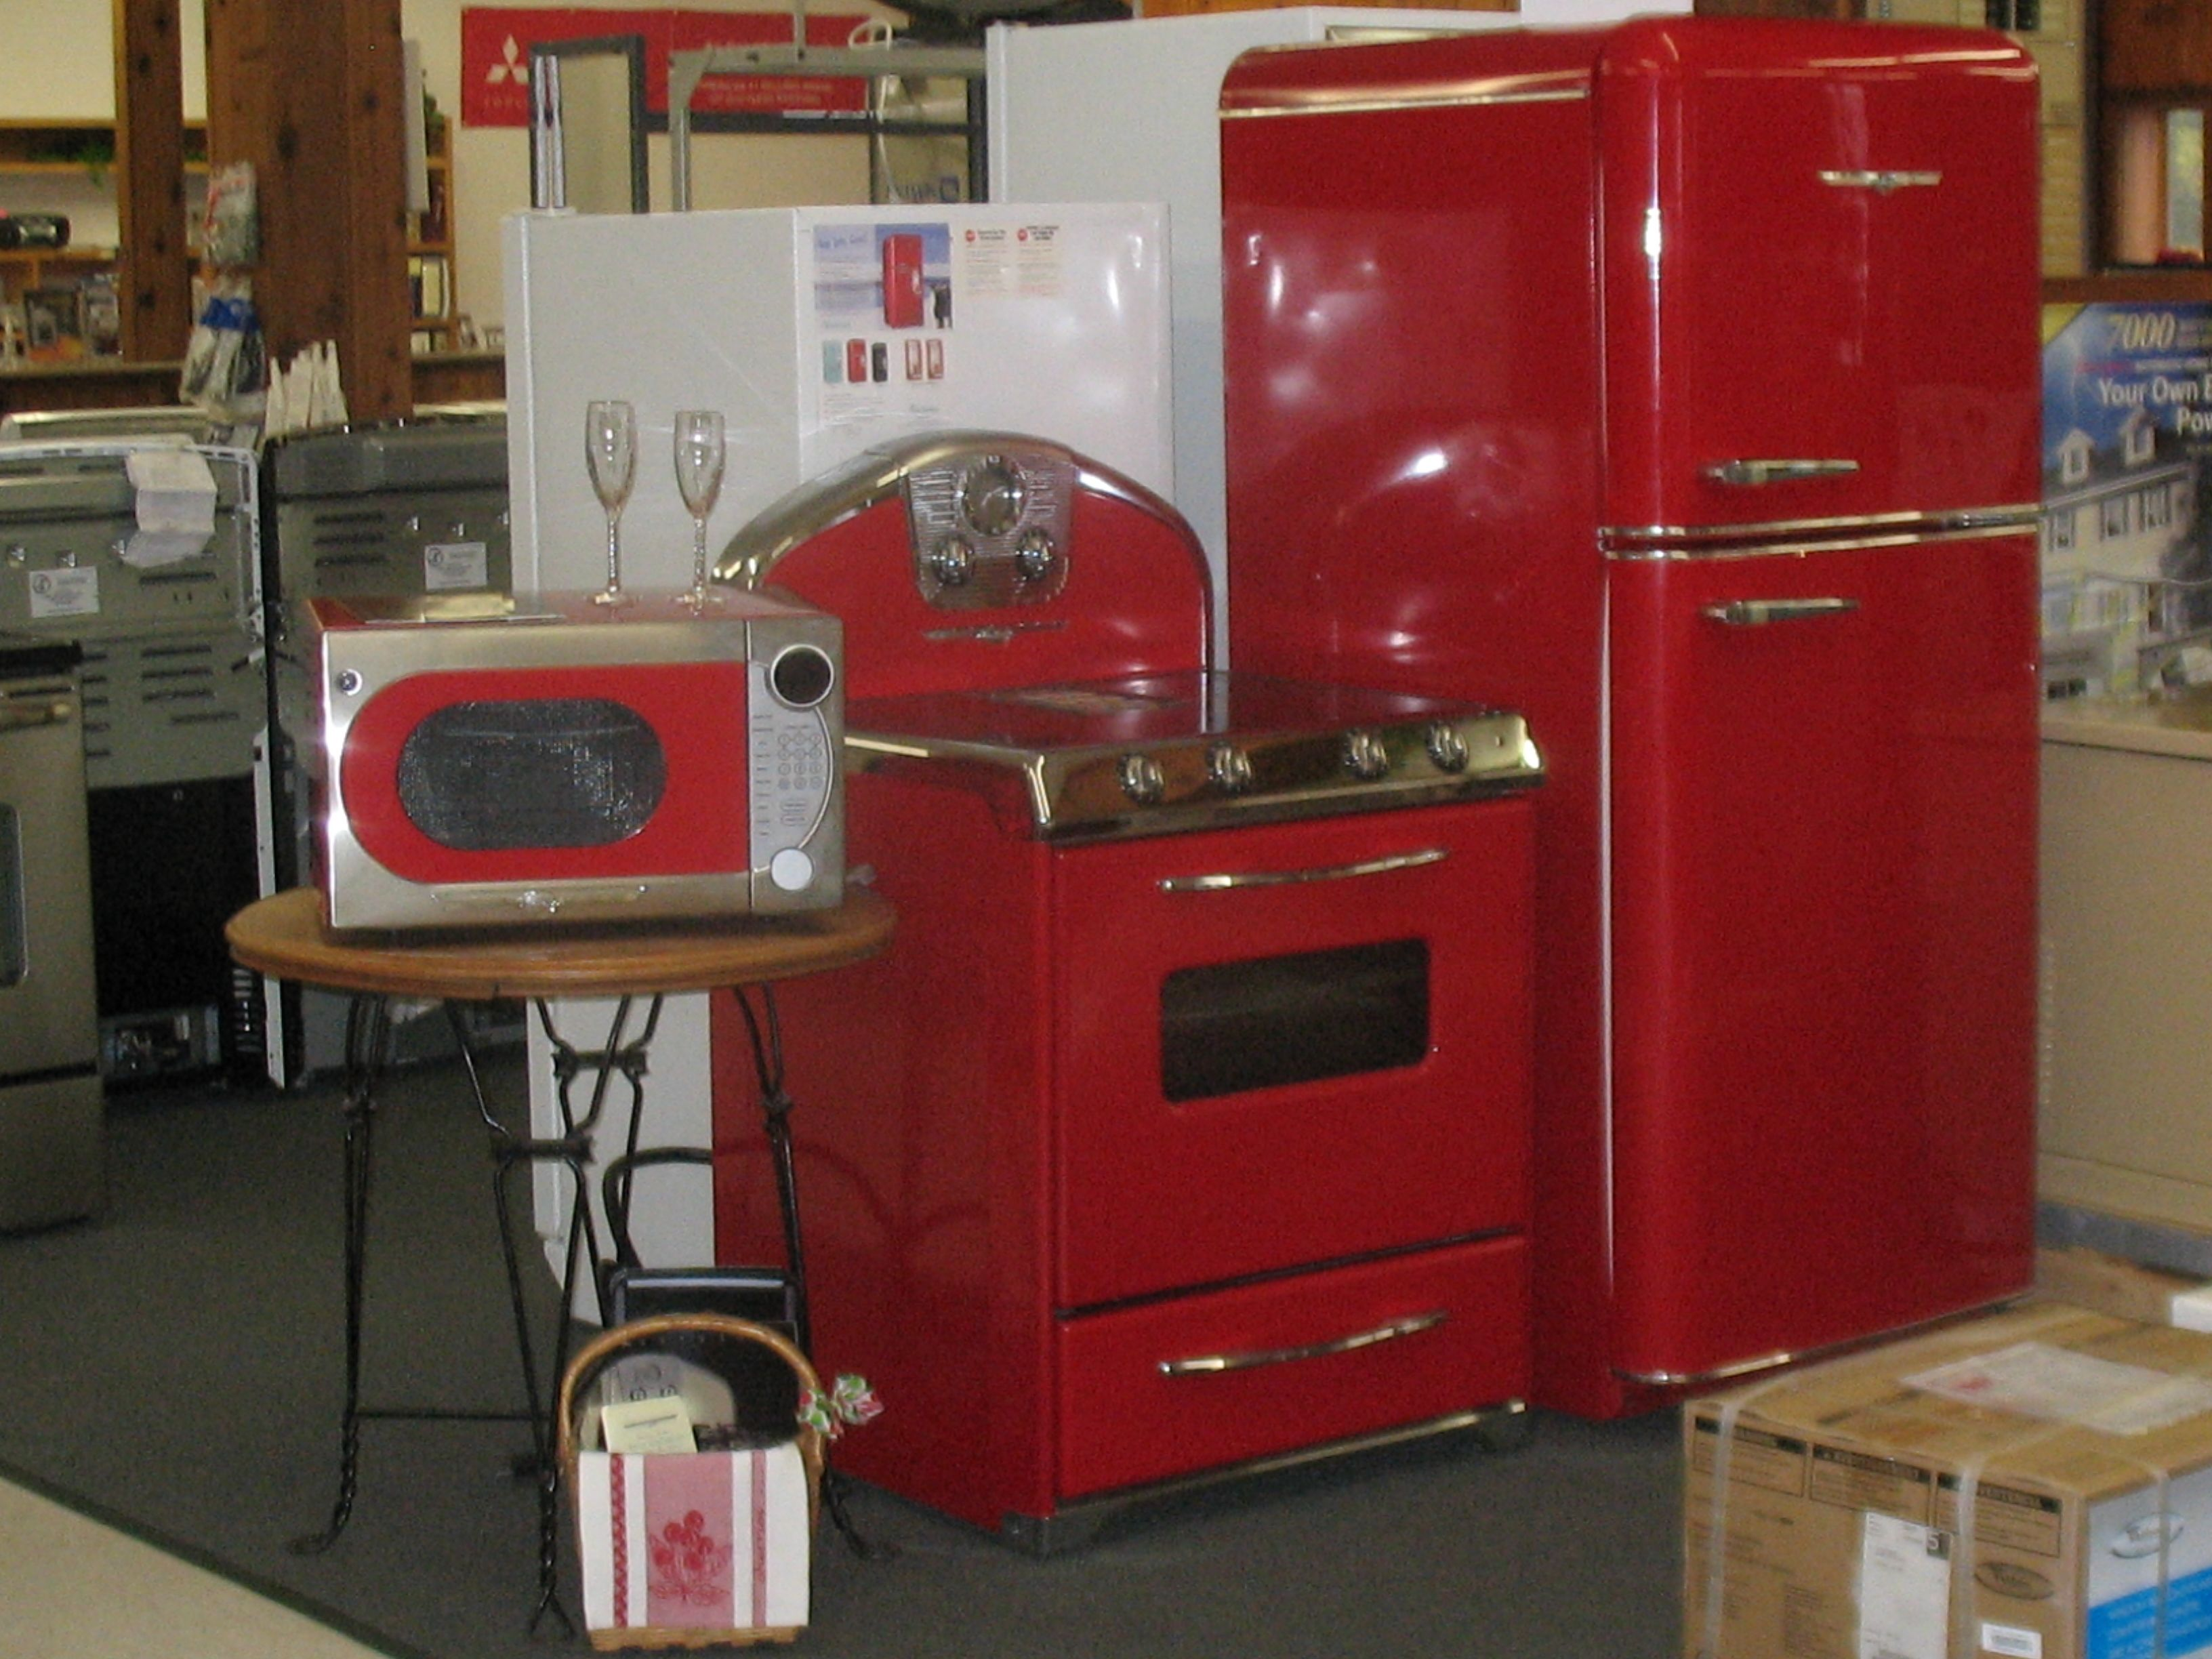 Retro 1950 S Styled Kitchen Appliances With All The Modern Conveniences By Elmira Stove Works